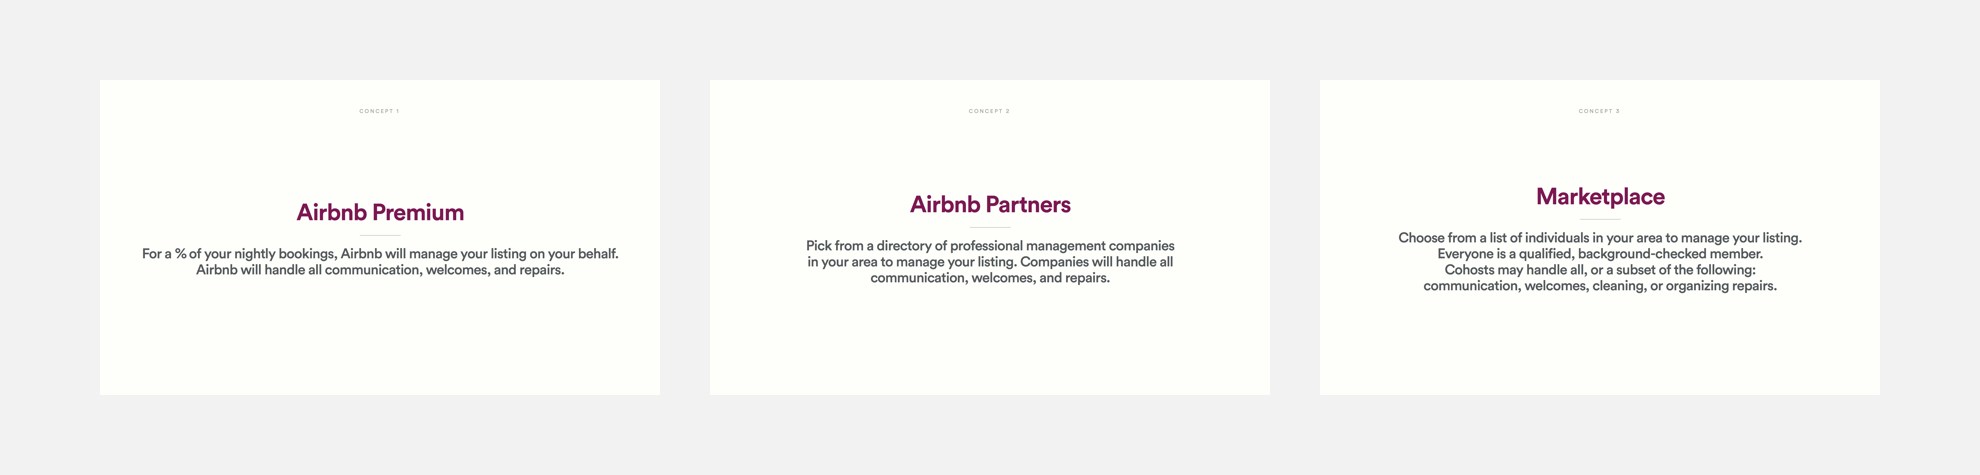 A description of three sacrificial concepts: Airbnb Premium, Airbnb Partners, and Marketplace.